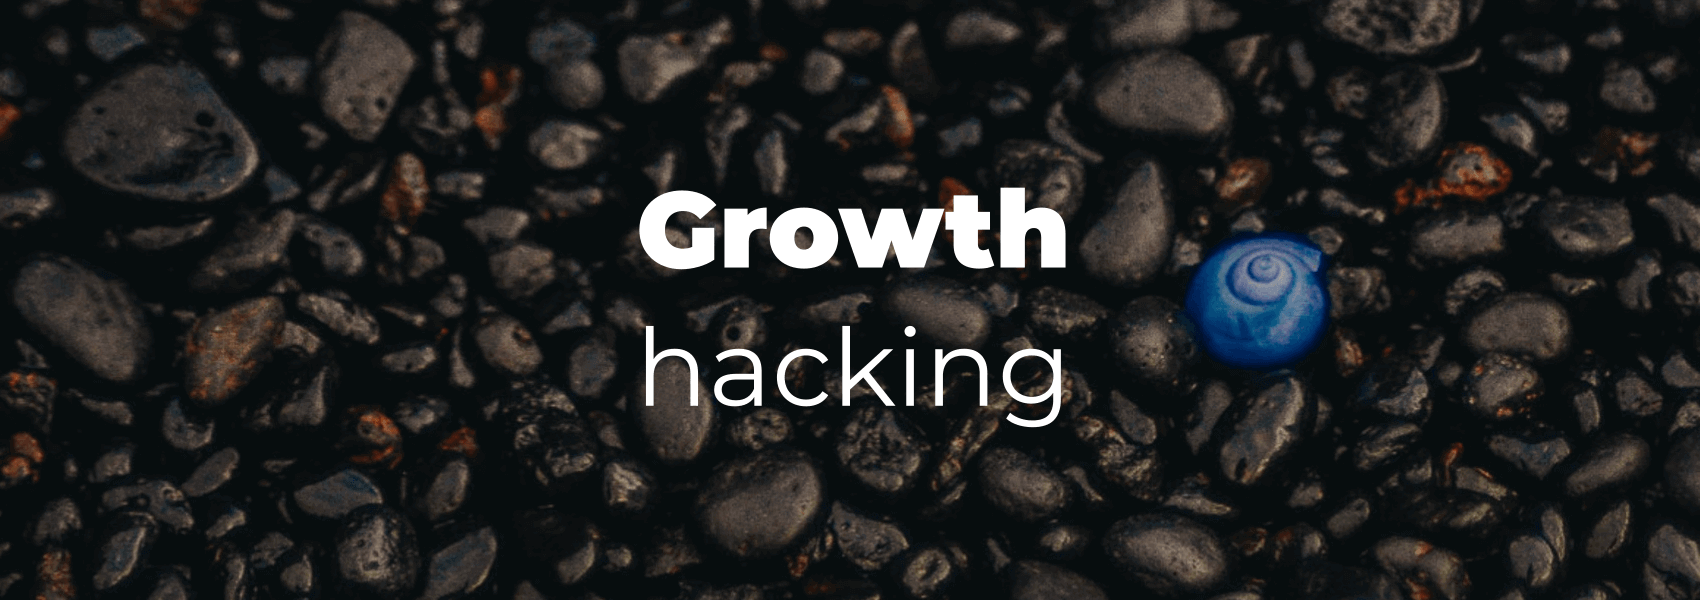 Growth hacking?